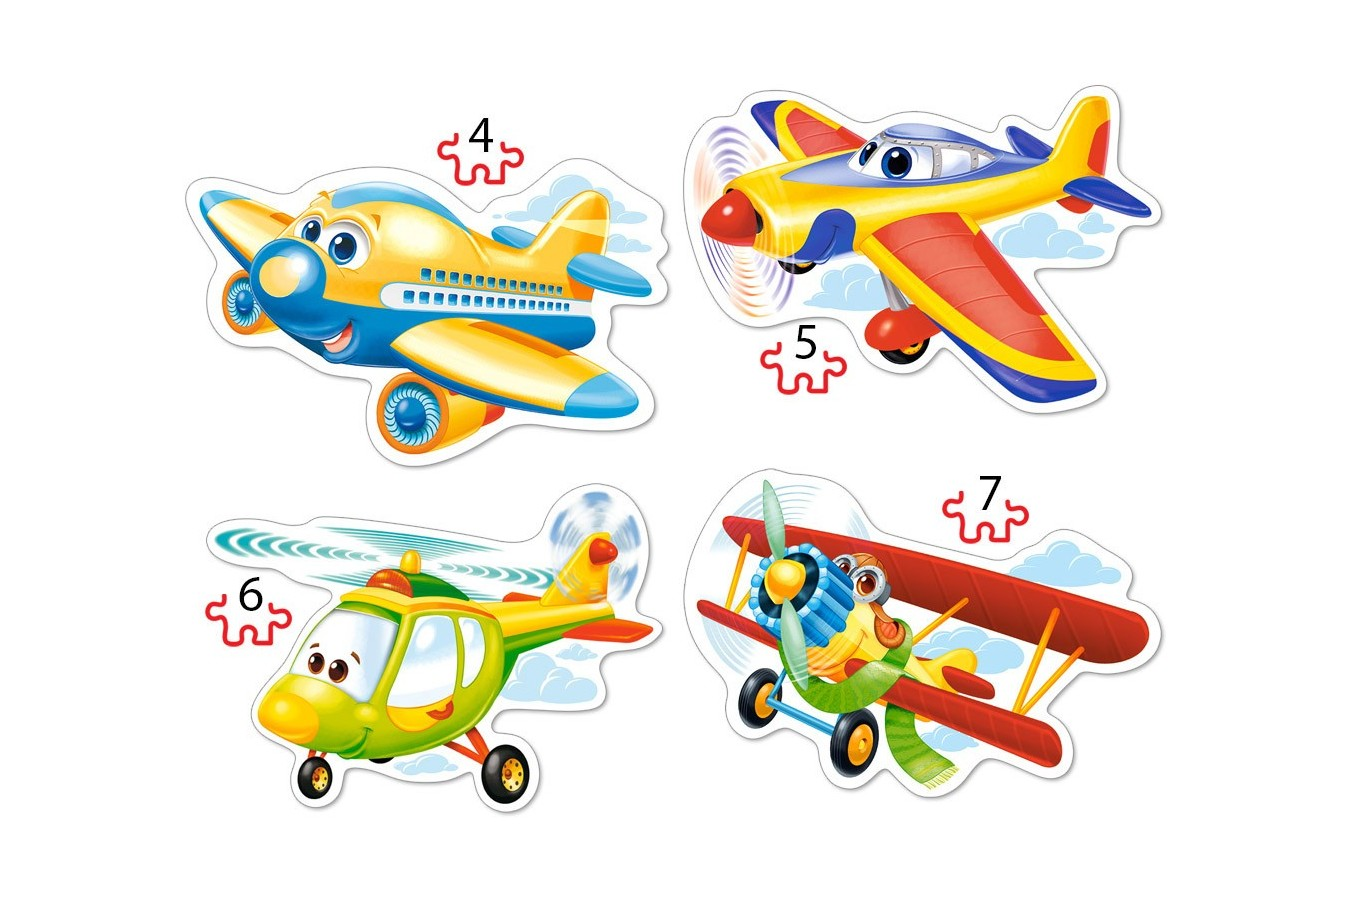 Puzzle 4 in 1 Castorland - Funny Planes, 4/5/6/7 piese